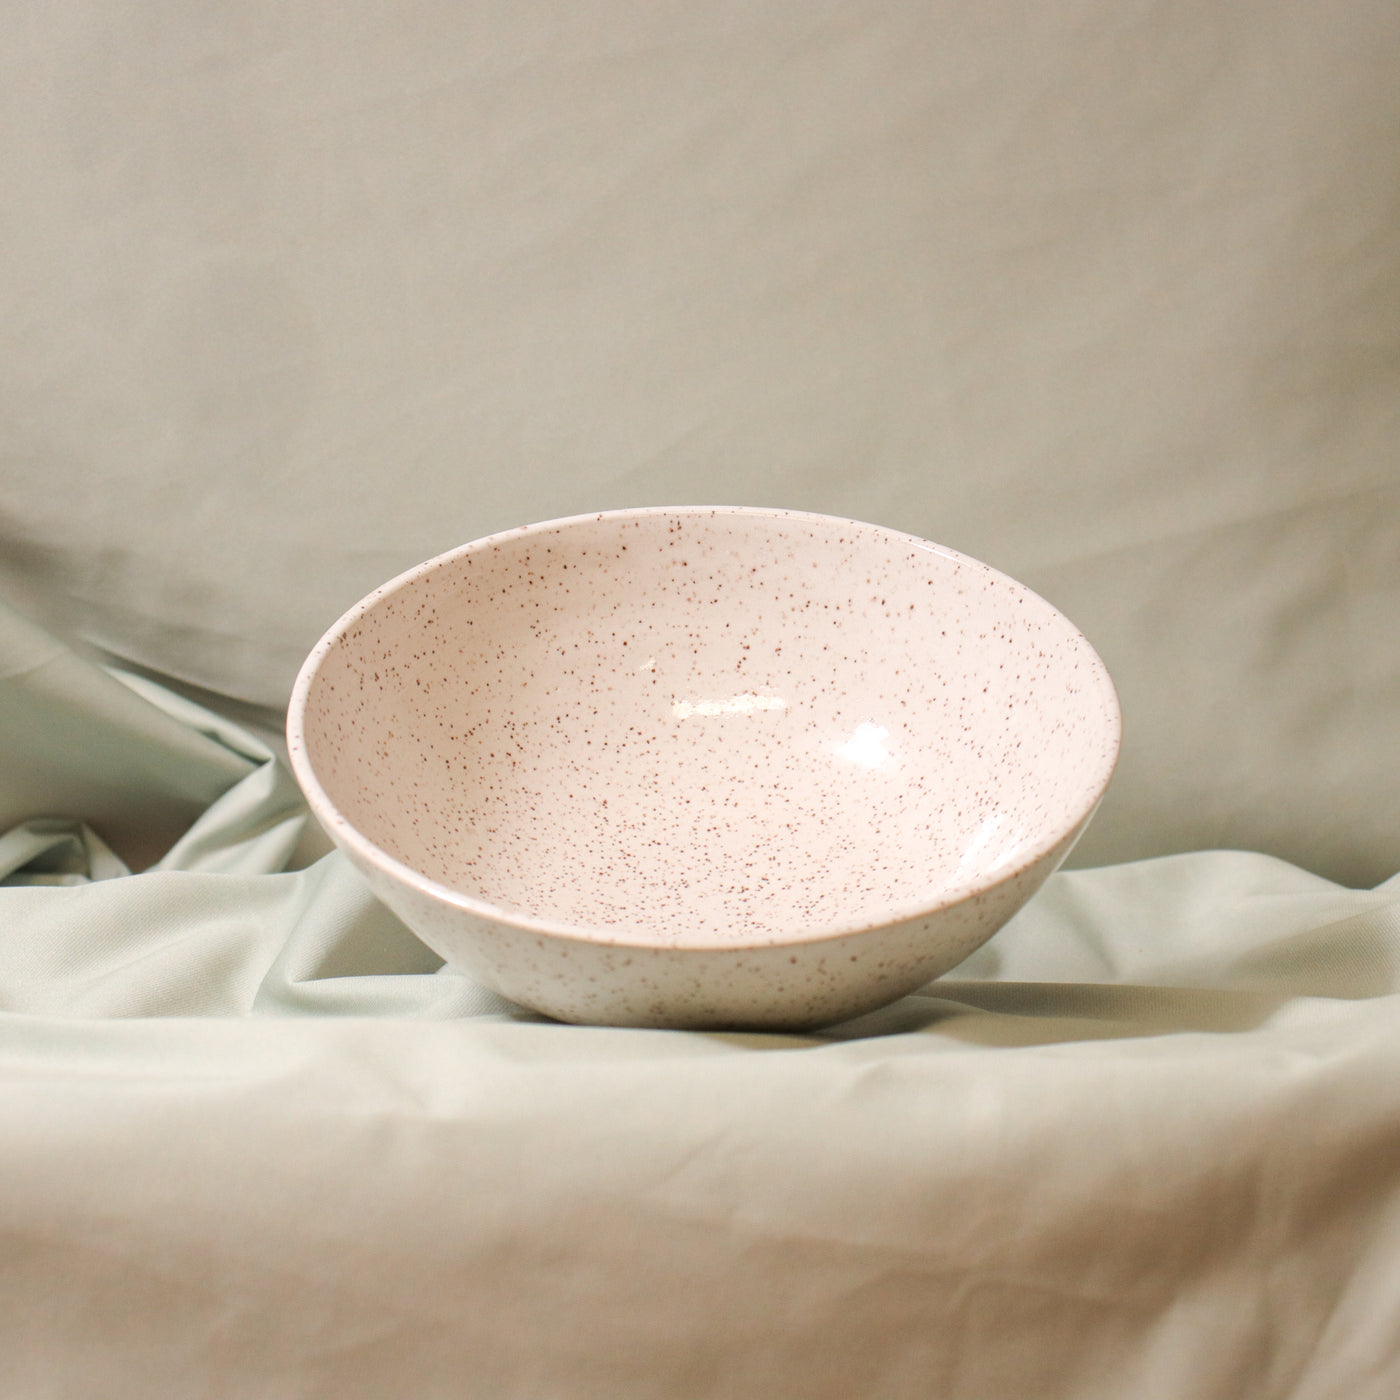 Pinto Projects Dinner Bowl Rose City Goods Handmade Wheel Thrown Bowl Speckled Glaze Eggshell Modern Handmade Housewares Ethically Made in Vancouver BC